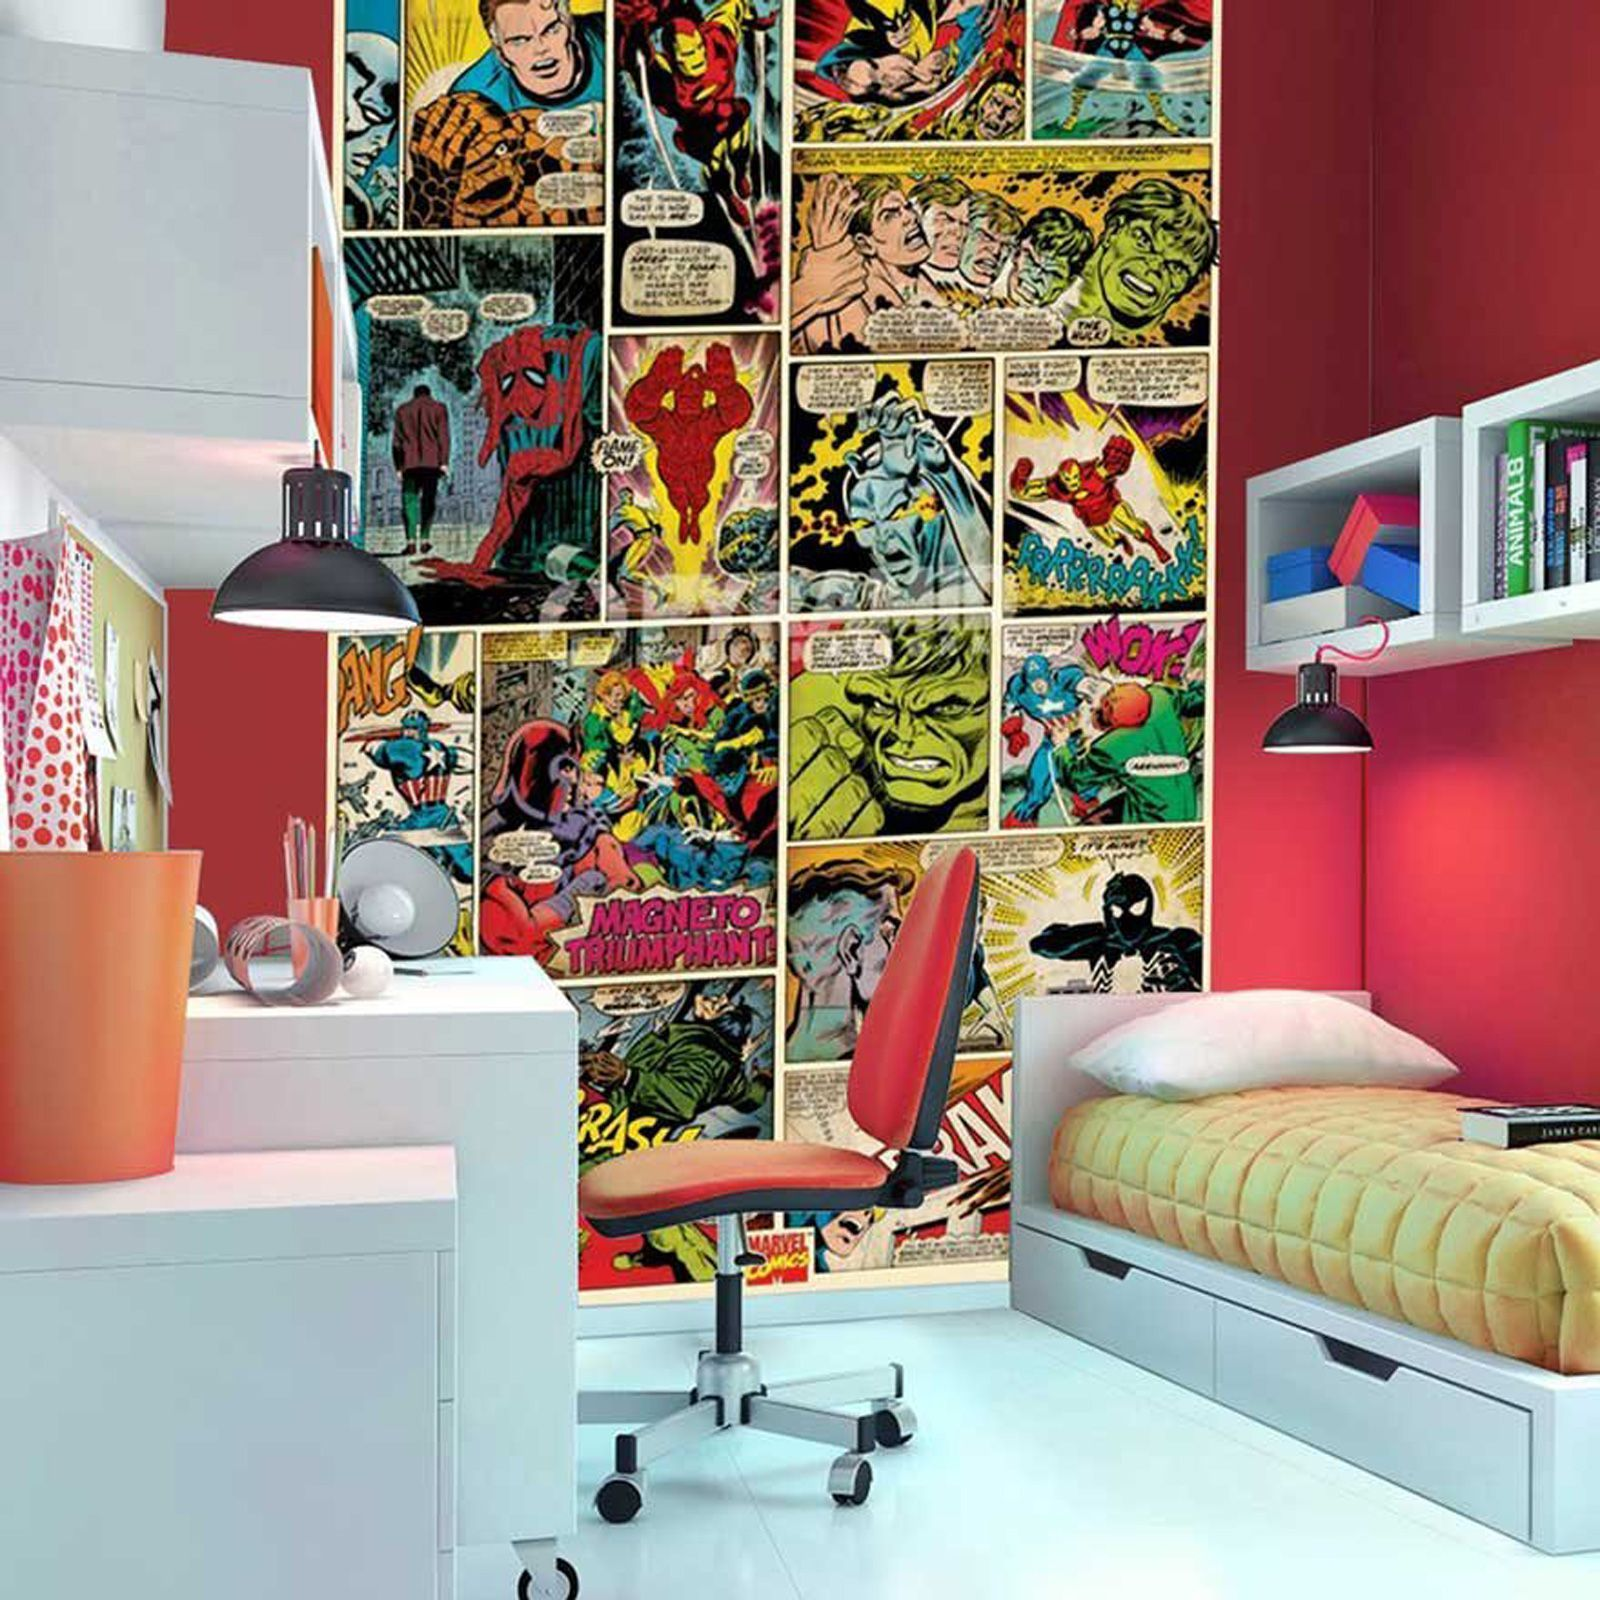 MARVEL-COMICS-AND-AVENGERS-WALLPAPER-WALL-MURALS-DECOR-BEDROOM ...